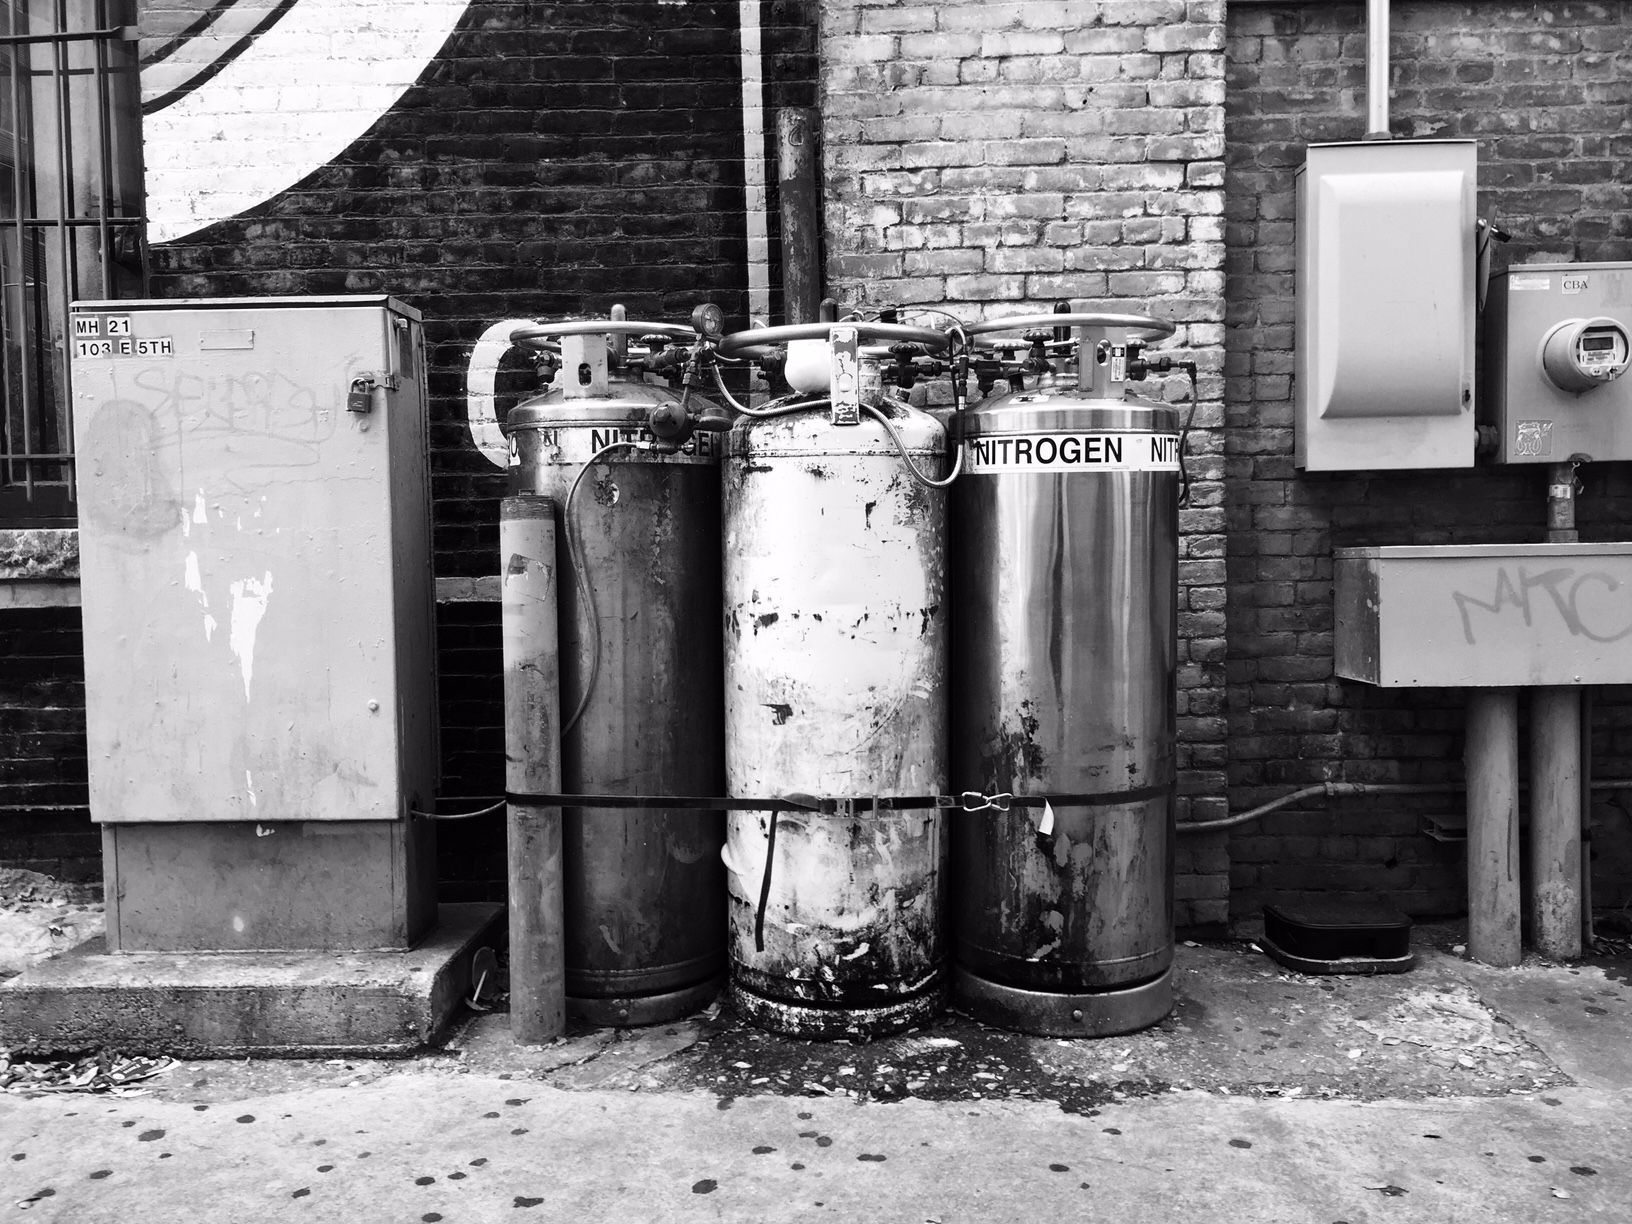 Urban alleys feature ad-hoc arrangements of energy sources, waste, and storage — some of questionable proximity.